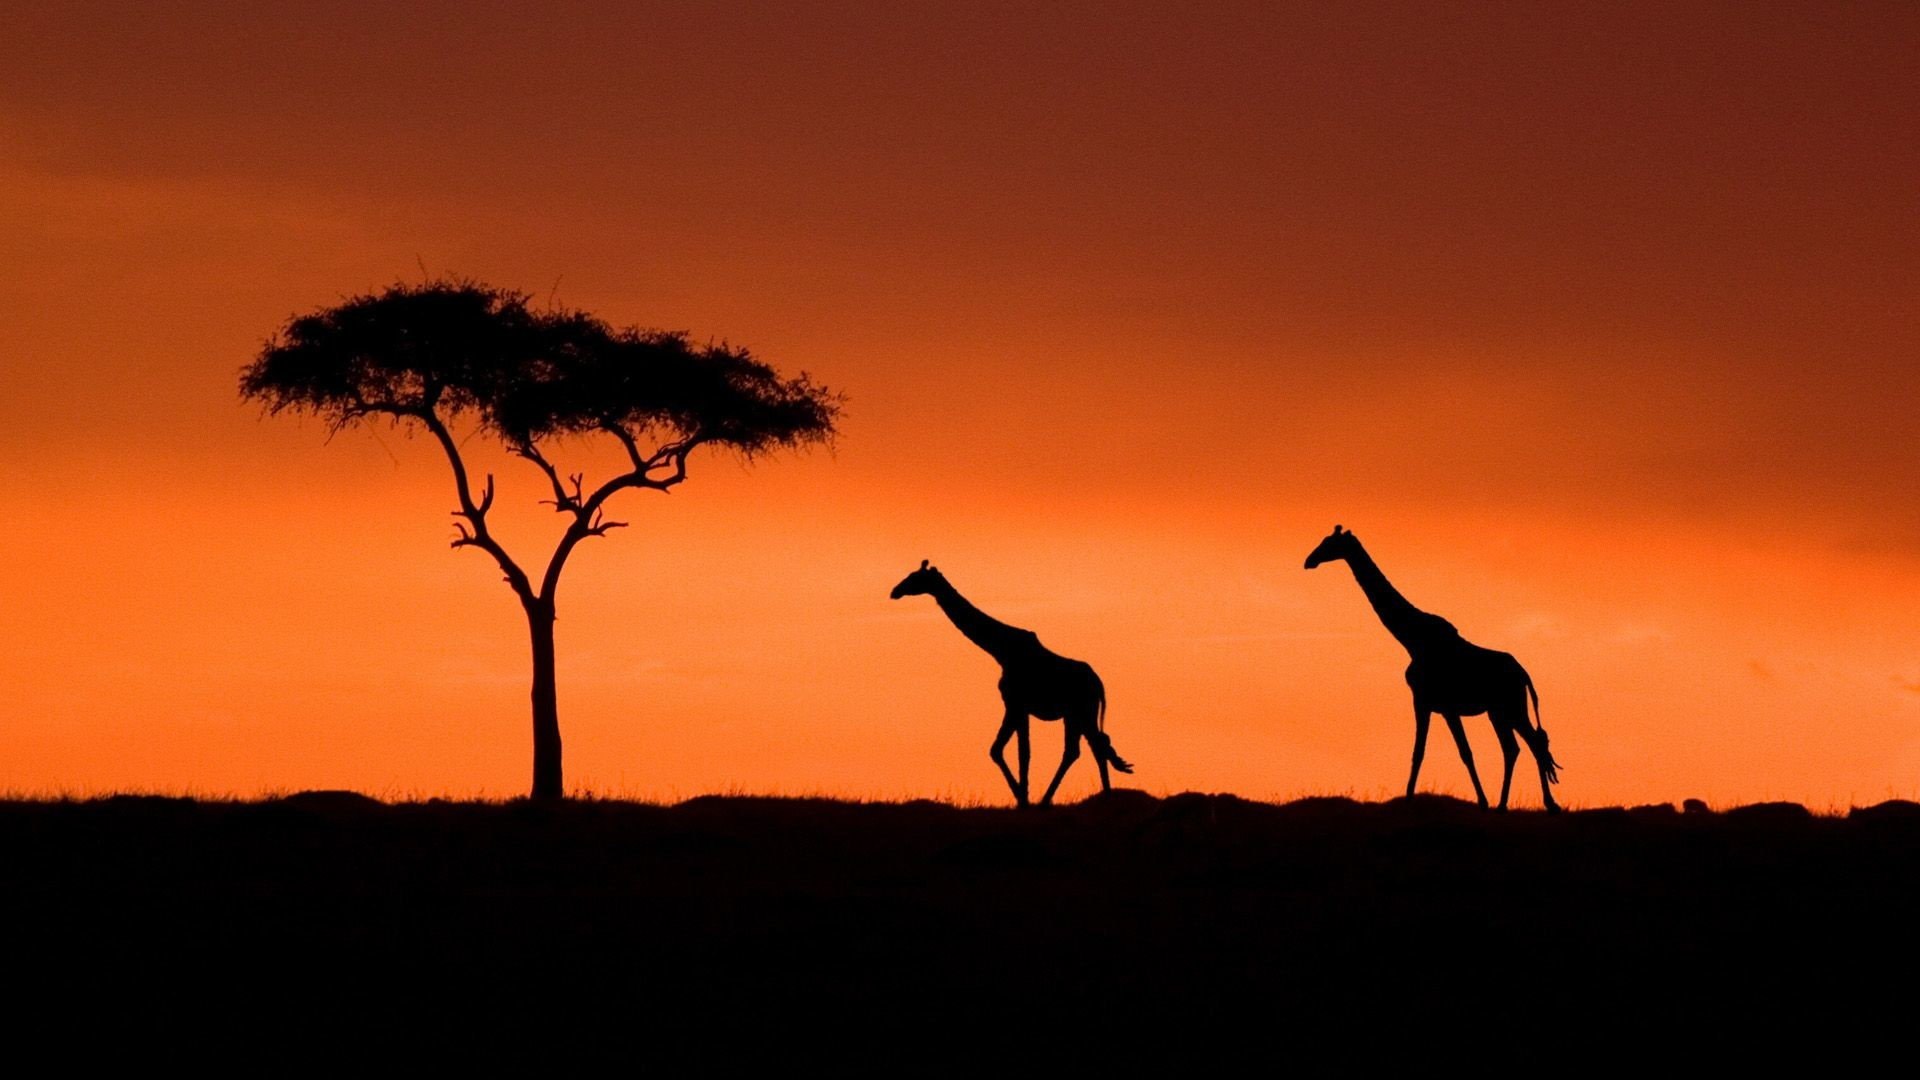 1920x1080 Giraffe Sunset Wallpaper Desktop Background – Wallpaper